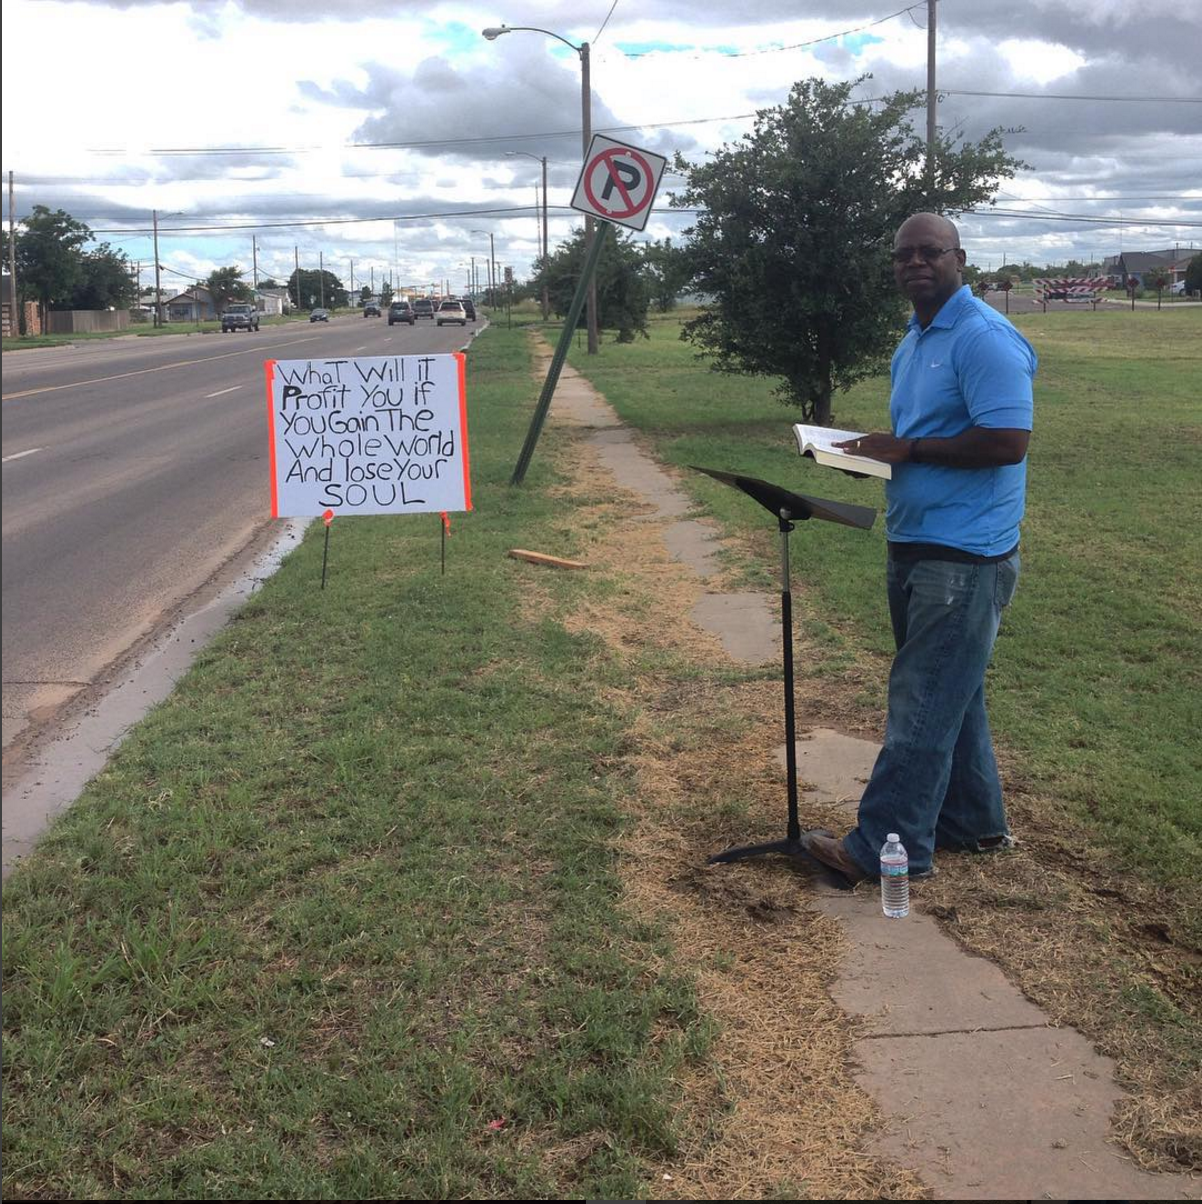 """Midland, TX. August, 2015.  """"What will it profit you if you gain the whole world and lose your soul?"""" Pastor LV Brown reading the psalms. He started the Appostolic Eklesia church after an accident in the oil field that he says should have killed him or at least snapped his back, but he came out of it walking. He had strayed from faith for a little while and this experience prompted him to return to God. So he became a pastor.  #SnapshotLives"""